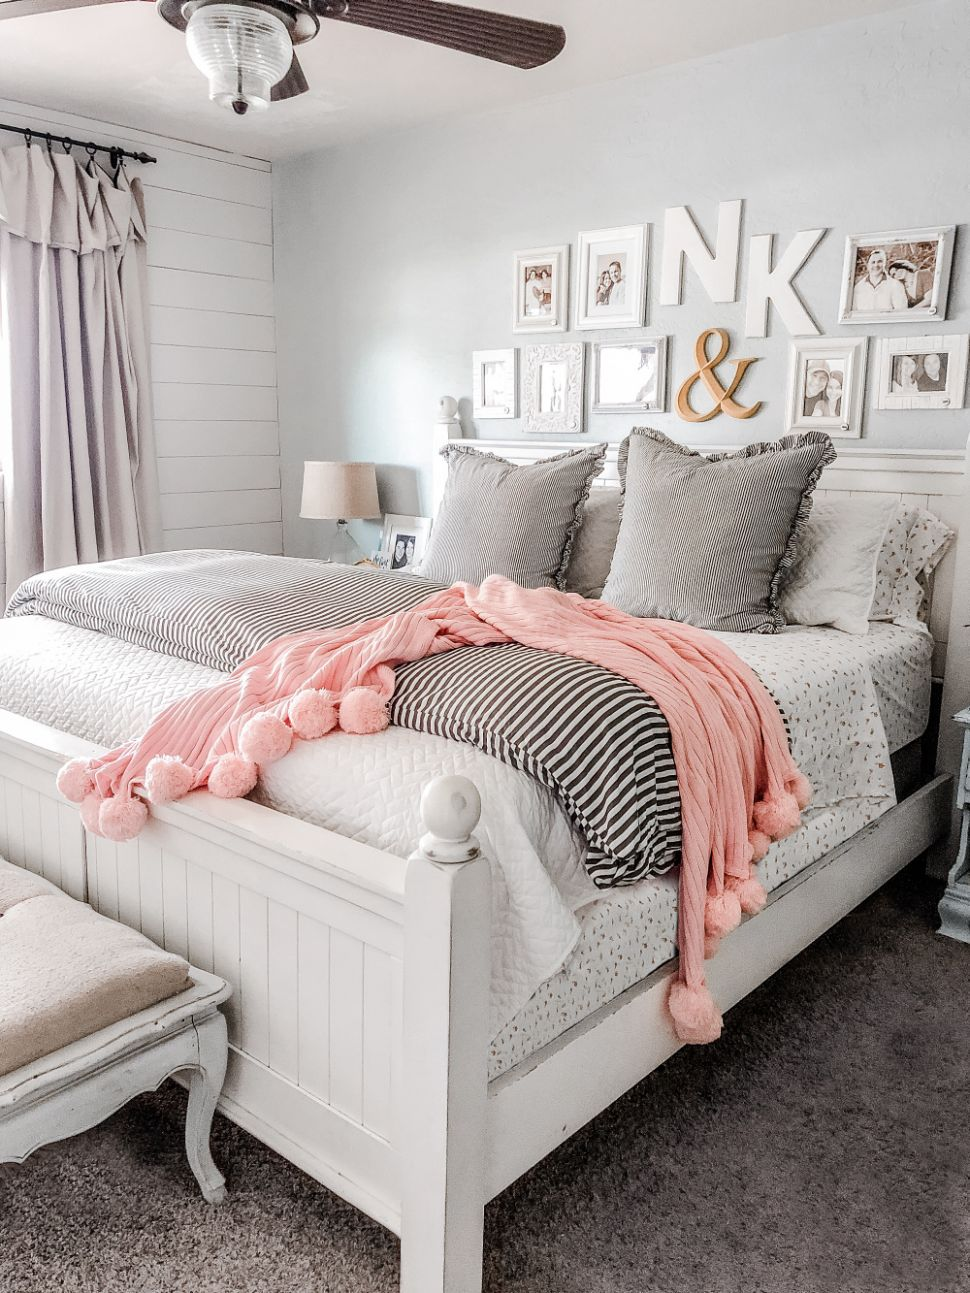 How to Layer a Coverlet Like a Boss - Lolly Jane - master bedroom quilt ideas